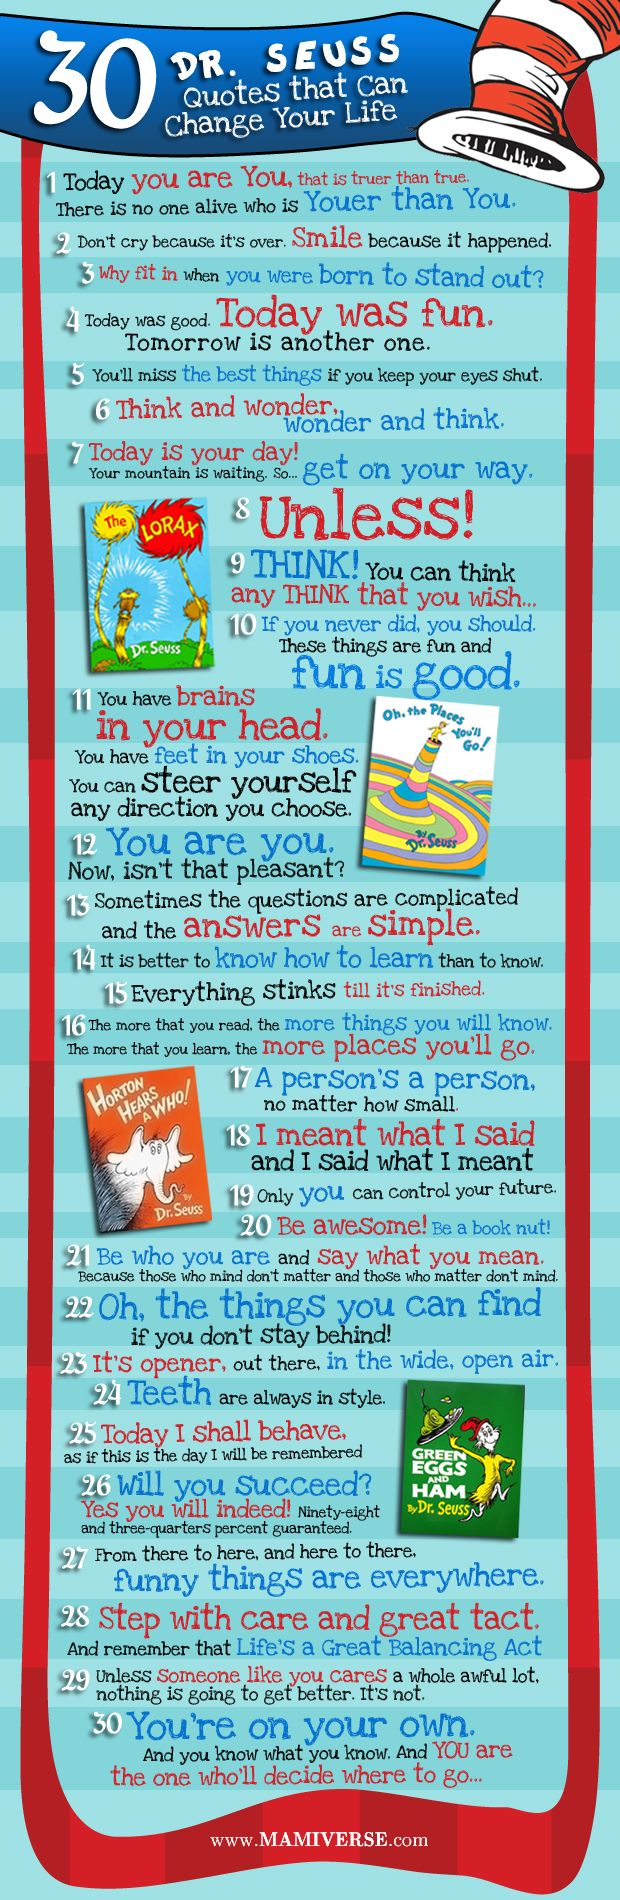 30 Dr. Seuss Quotes That Can Change Your Life...: 30 Dr., Life Lessons, Menu, Seussquotes, Drseuss, Dr. Suess Quotes, Dr Suess, Dr. Seuss Quotes, Kid